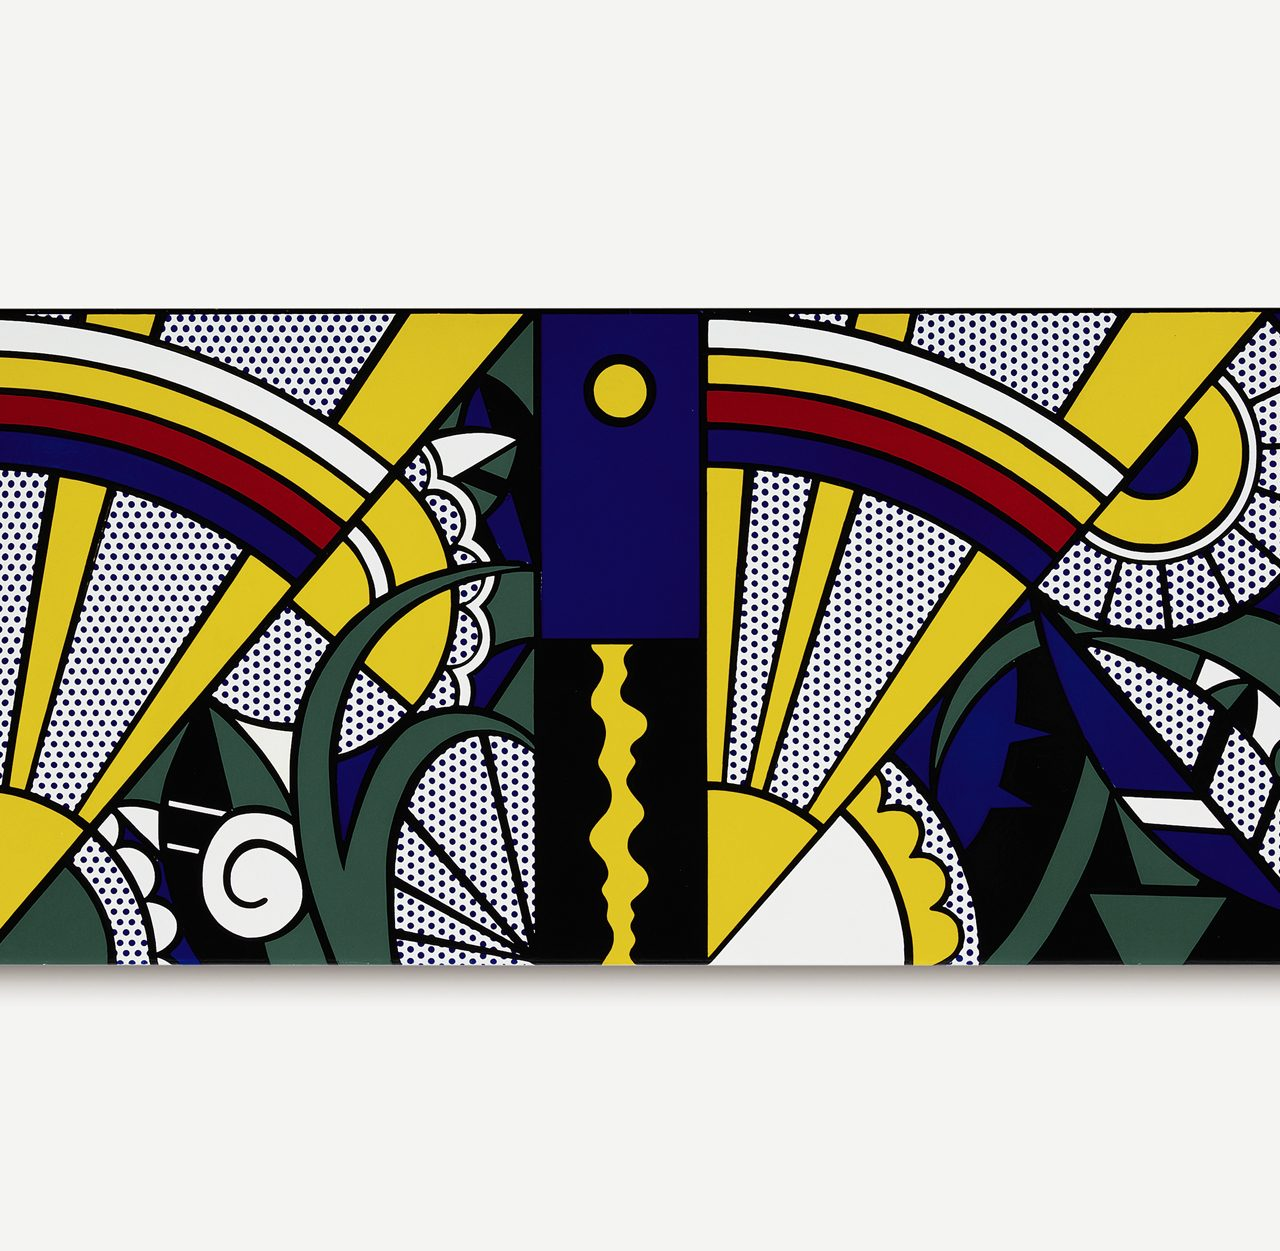 Roy Lichtenstein Panel 'Composition' Up For Auction at Sotheby's New York